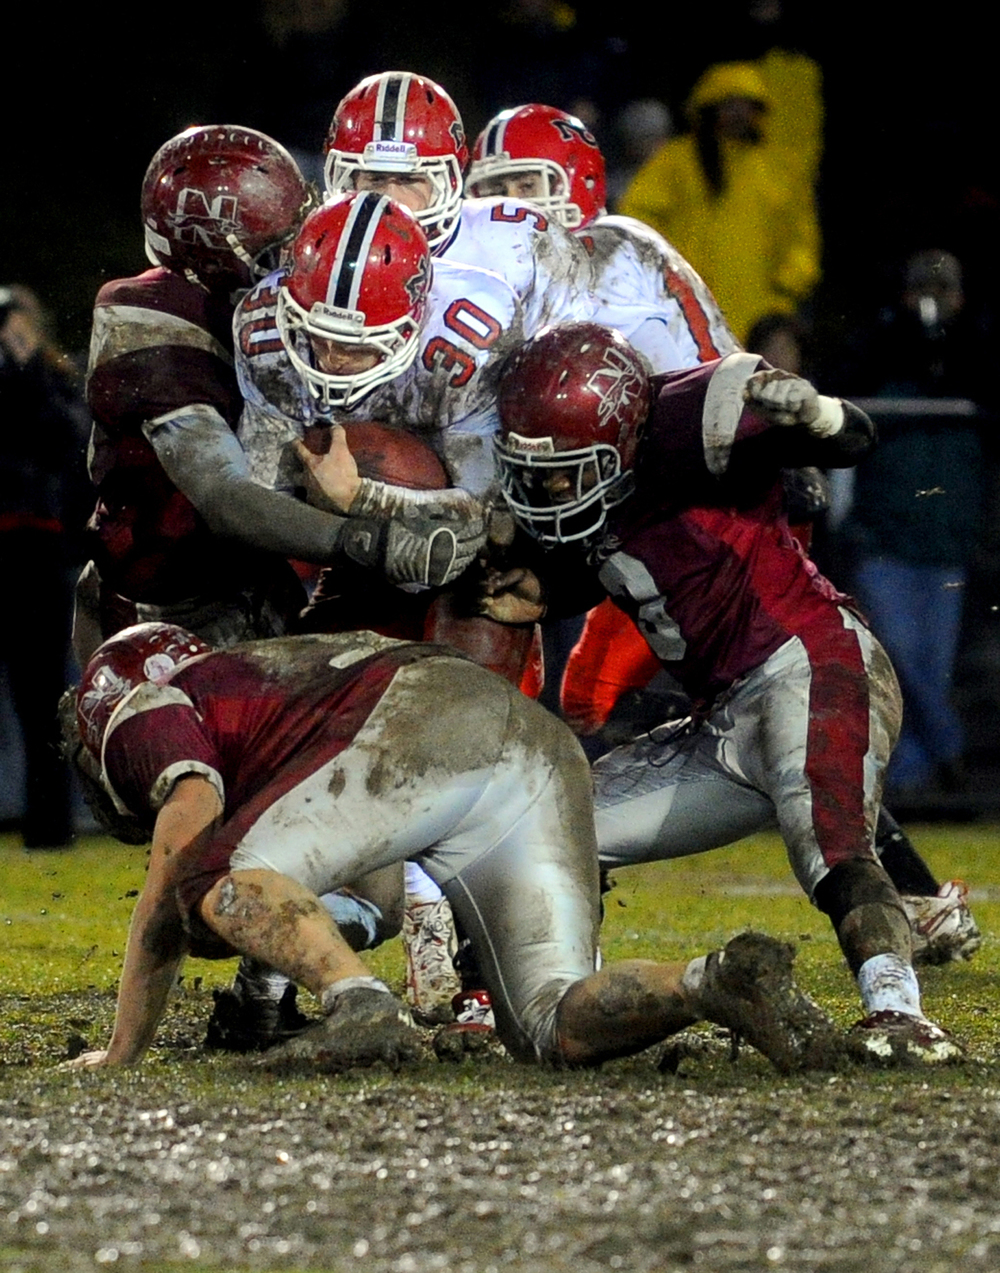 New Canaan's Conor Goodwin is tackled during Tuesday's Class L quarterfinal game at Naugatuck High School on November 30, 2010.